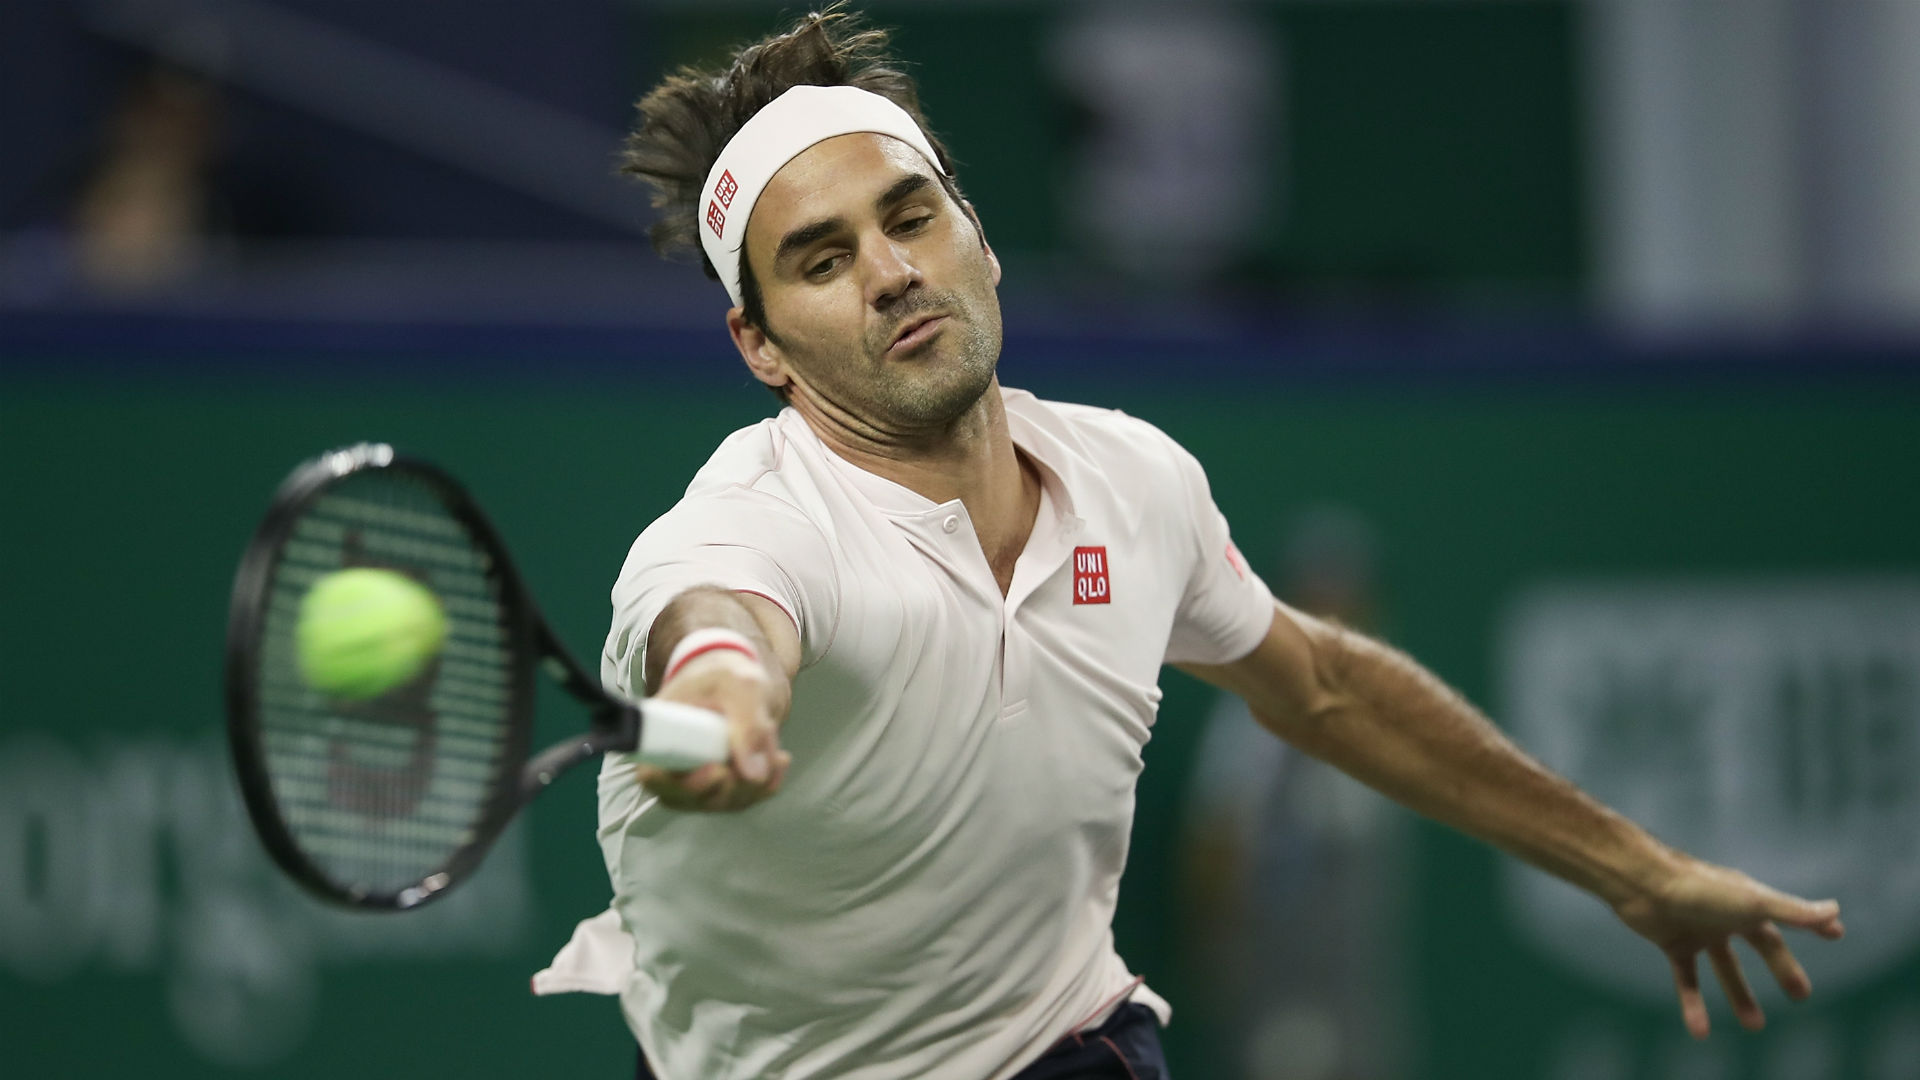 Federer sinks Nishikori to reach Shanghai semi-finals